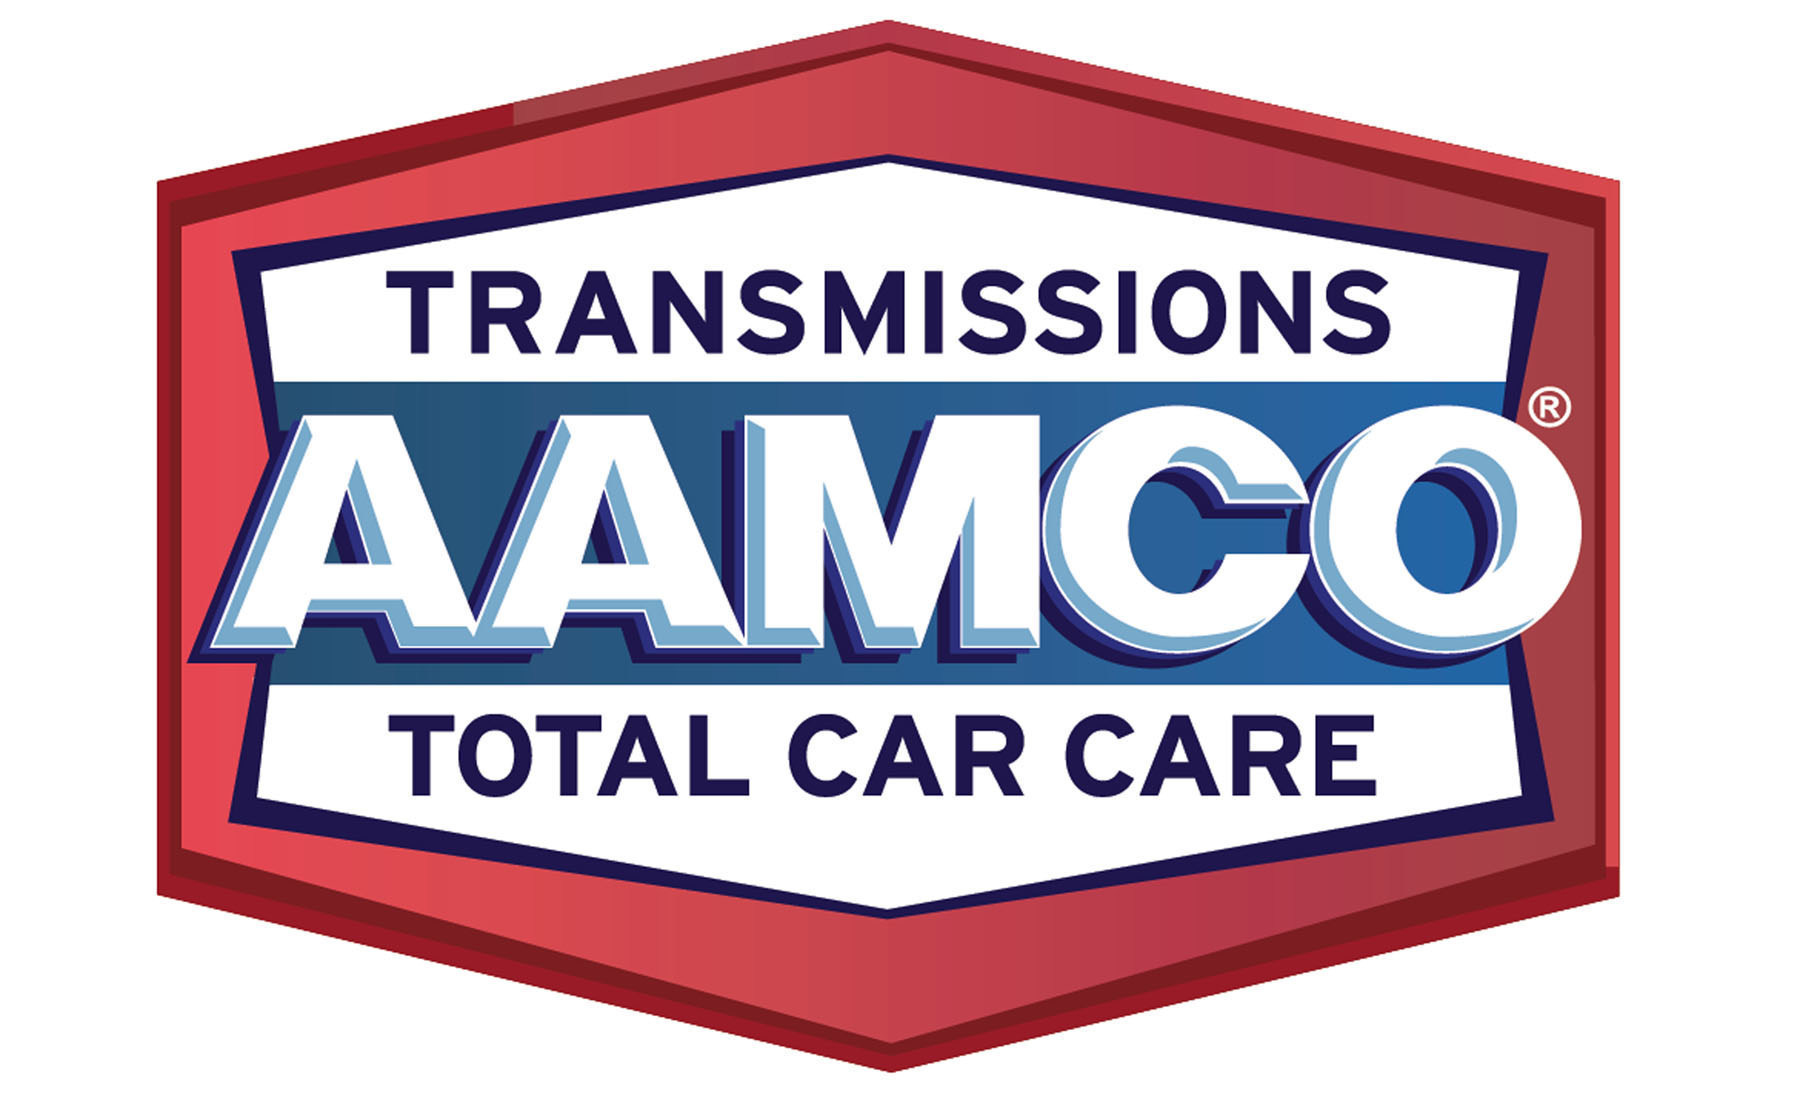 AAMCO-logo-1